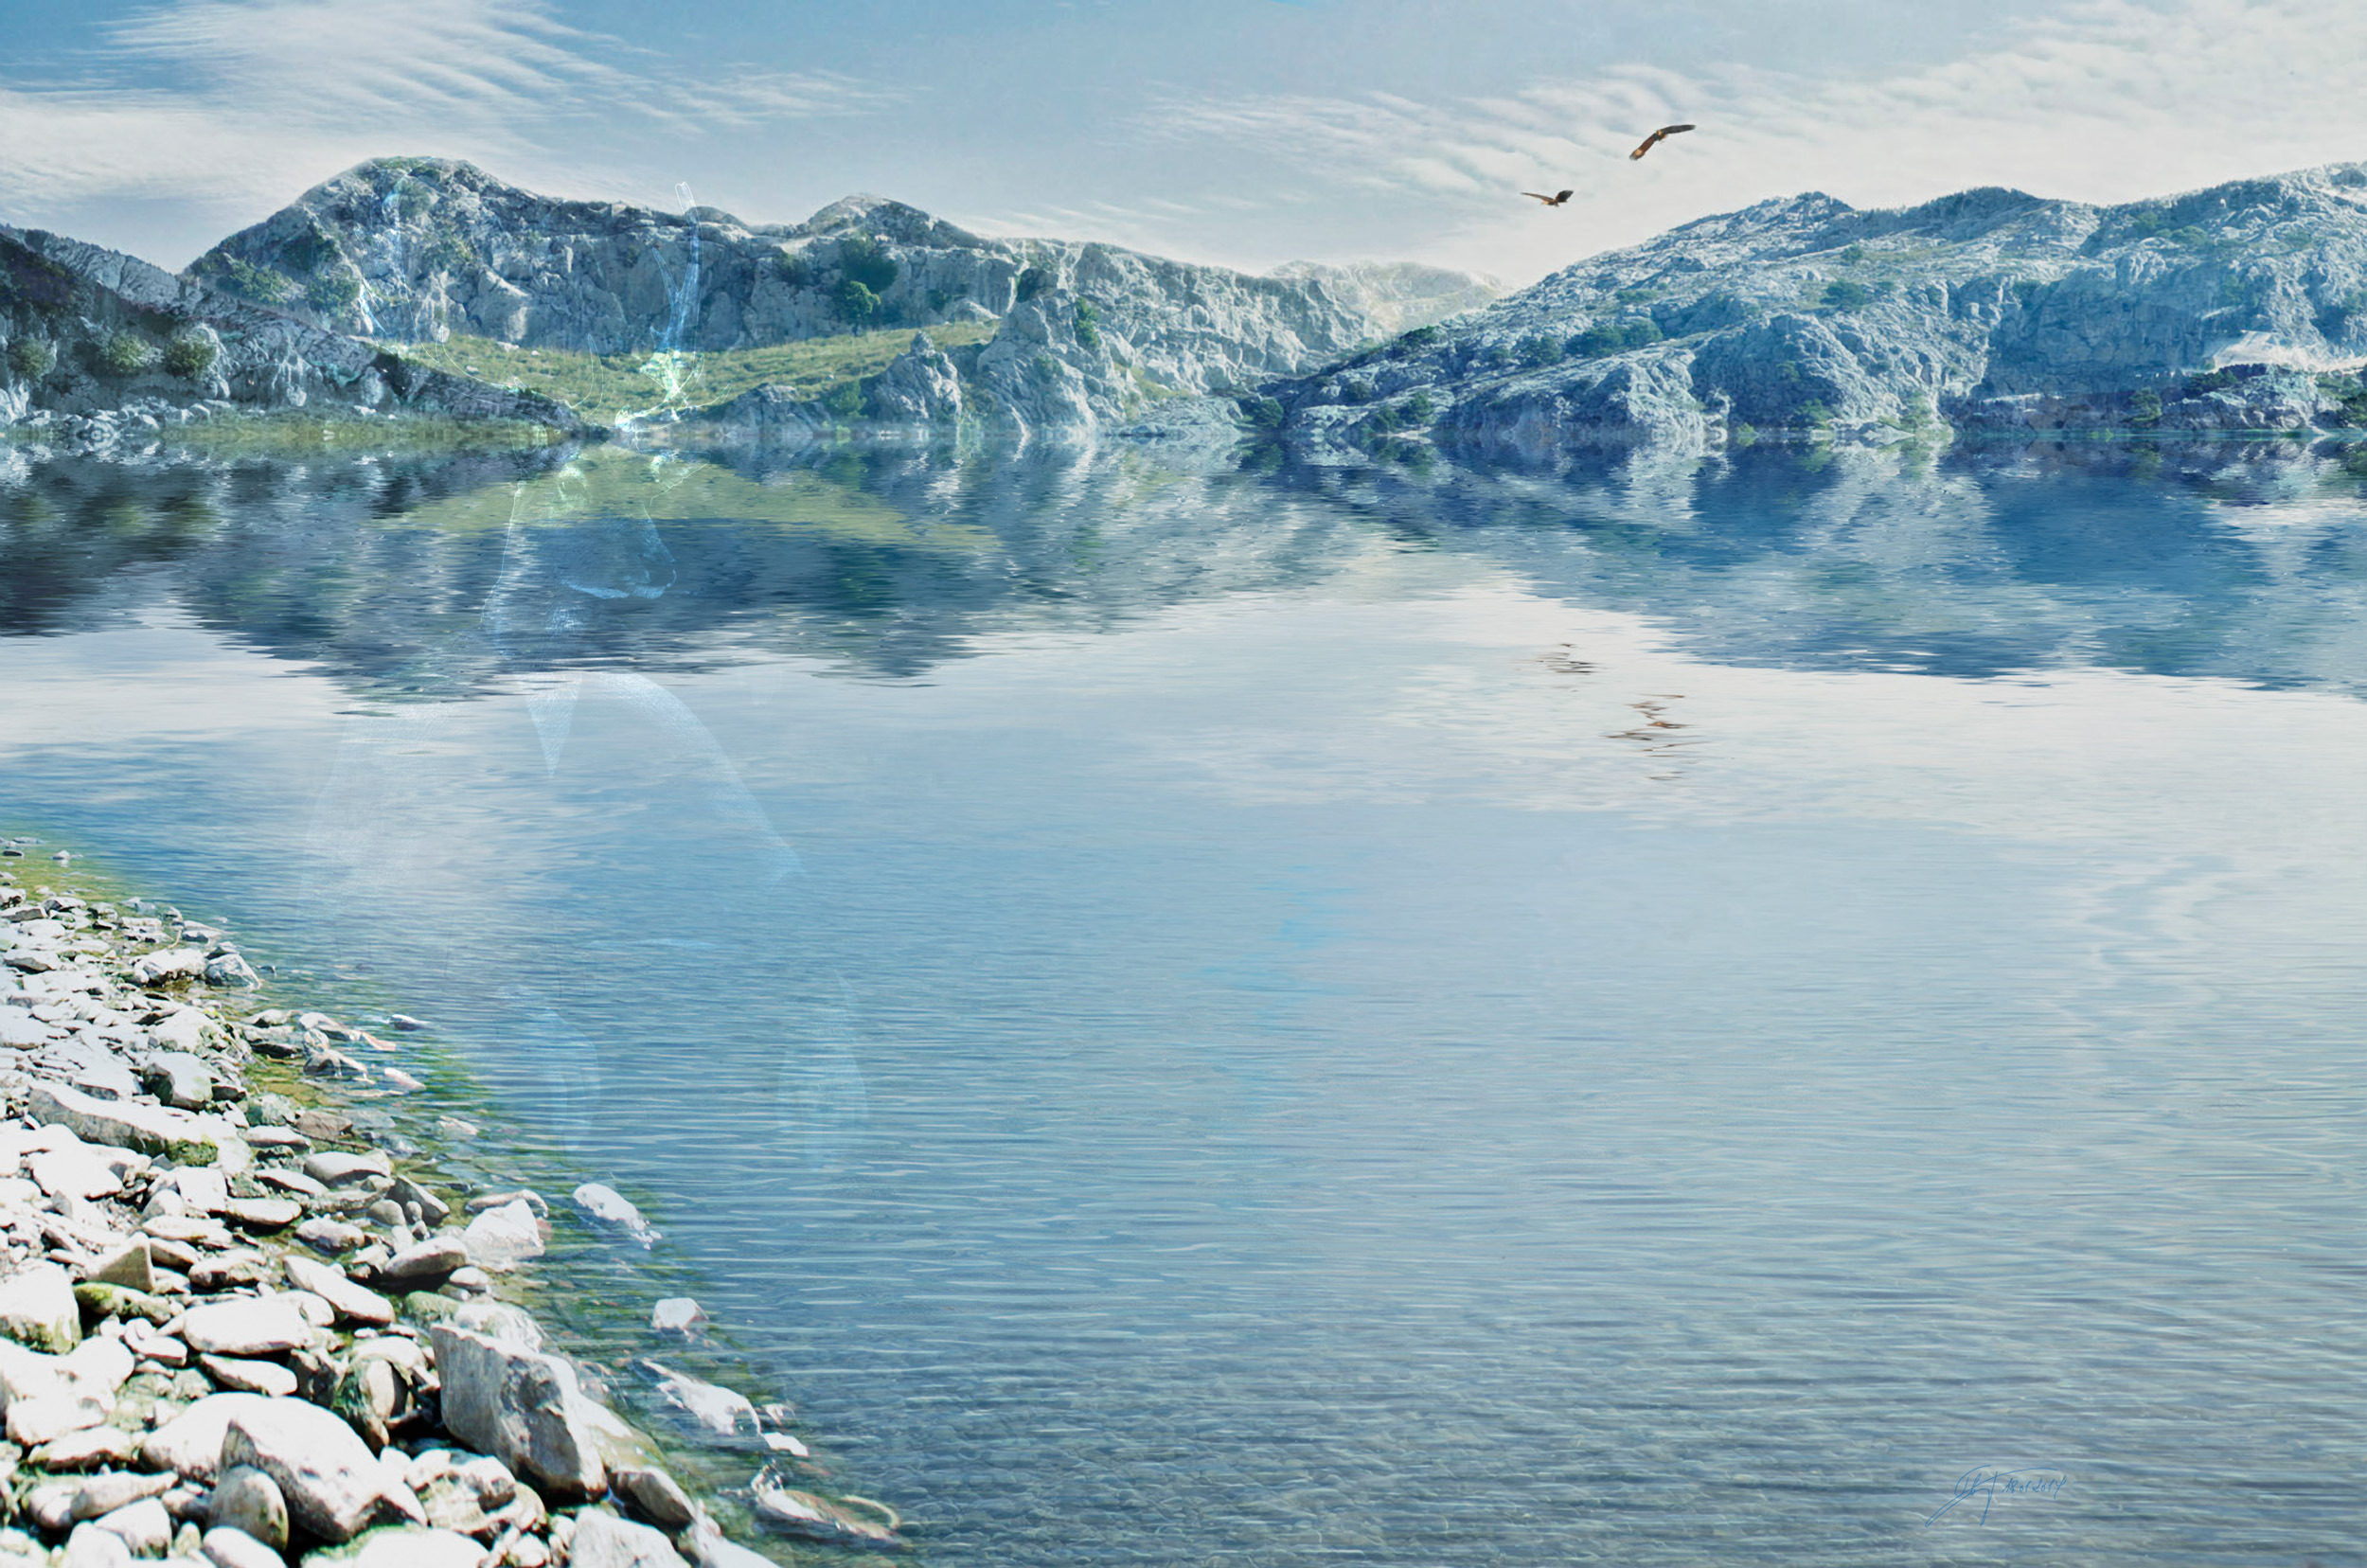 MWD 48; Contest; Sea; Tegernsee; Reflection; Springtime Sky; Mountains